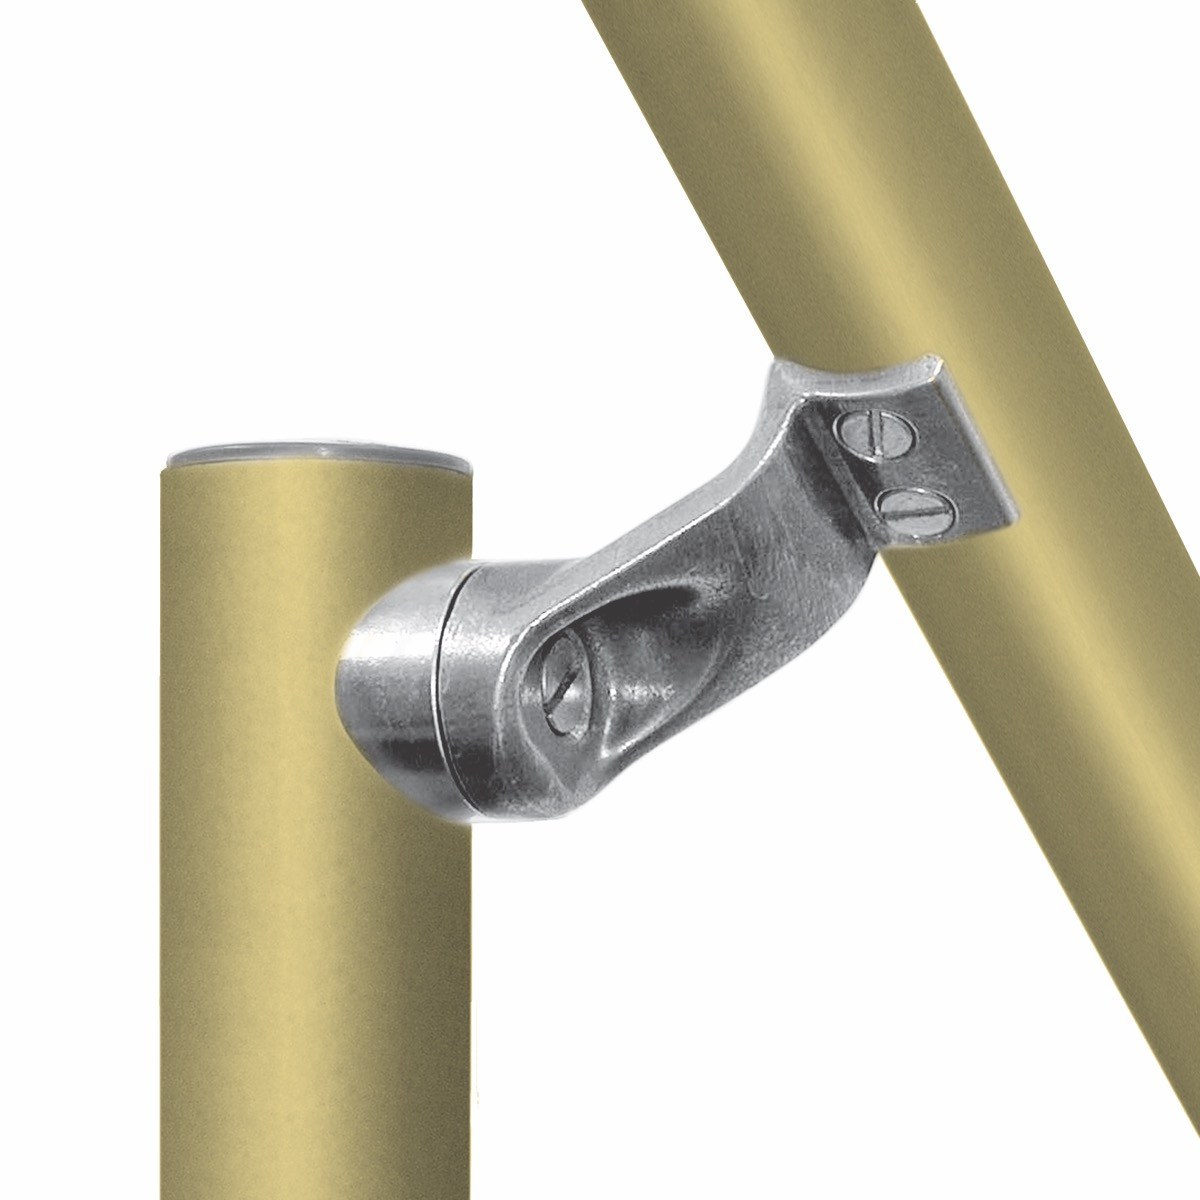 L160 - Smooth Handrail Fitting- ADA Compliant